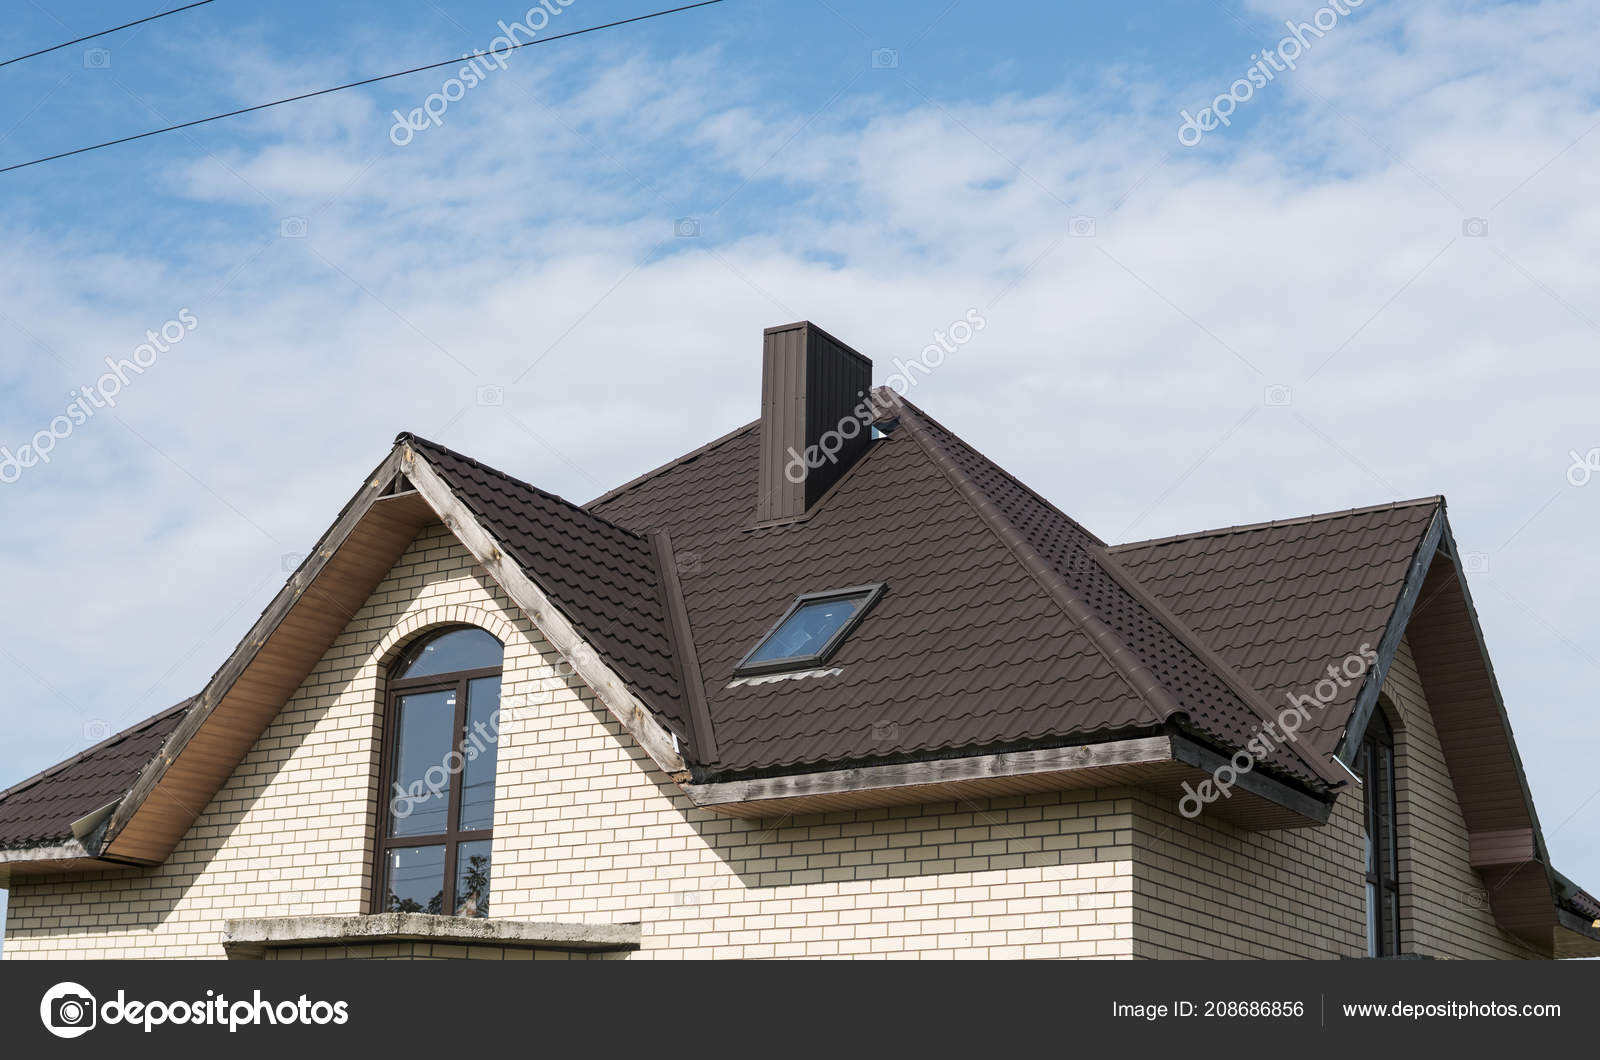 Images Pvc Roof Design Modern Roof Covered With Tile Effect Pvc Coated Brown Metal Roof Sheets Stock Photo C Volodymyrshtun 208686856